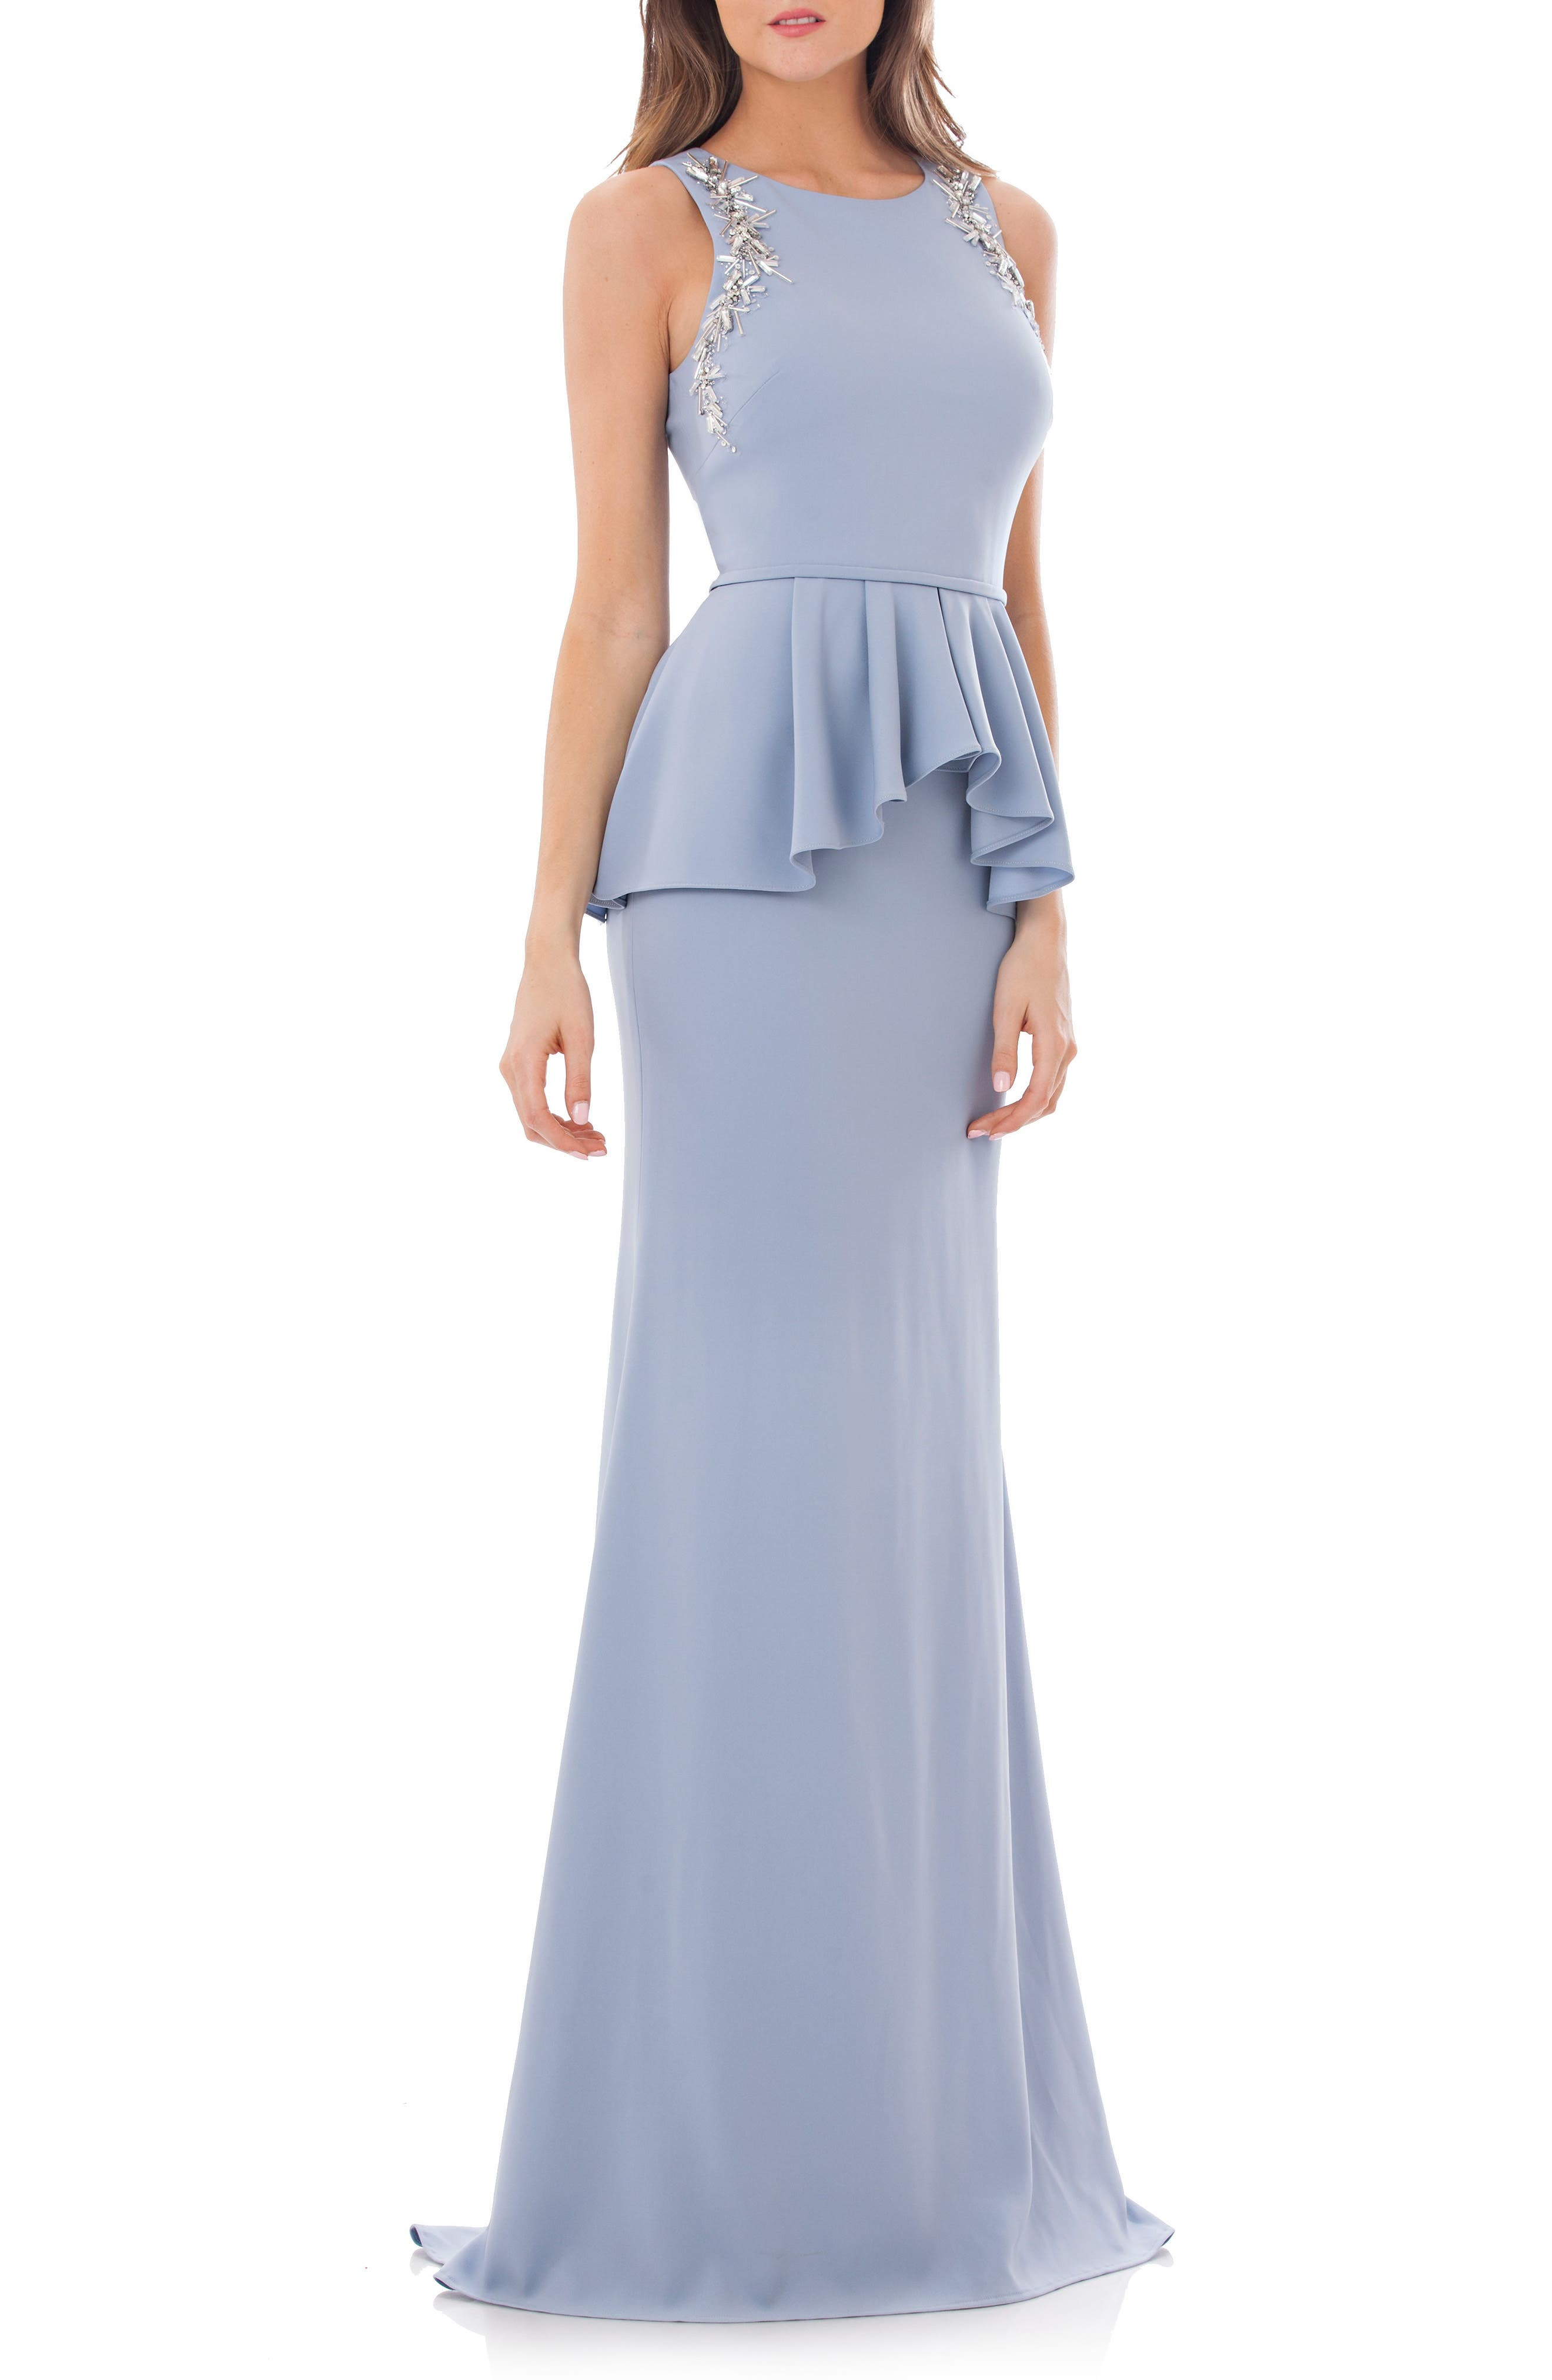 Alternate Image 1 Selected - Carmen Marc Valvo Infusion Embellished Peplum Waist Crepe Gown